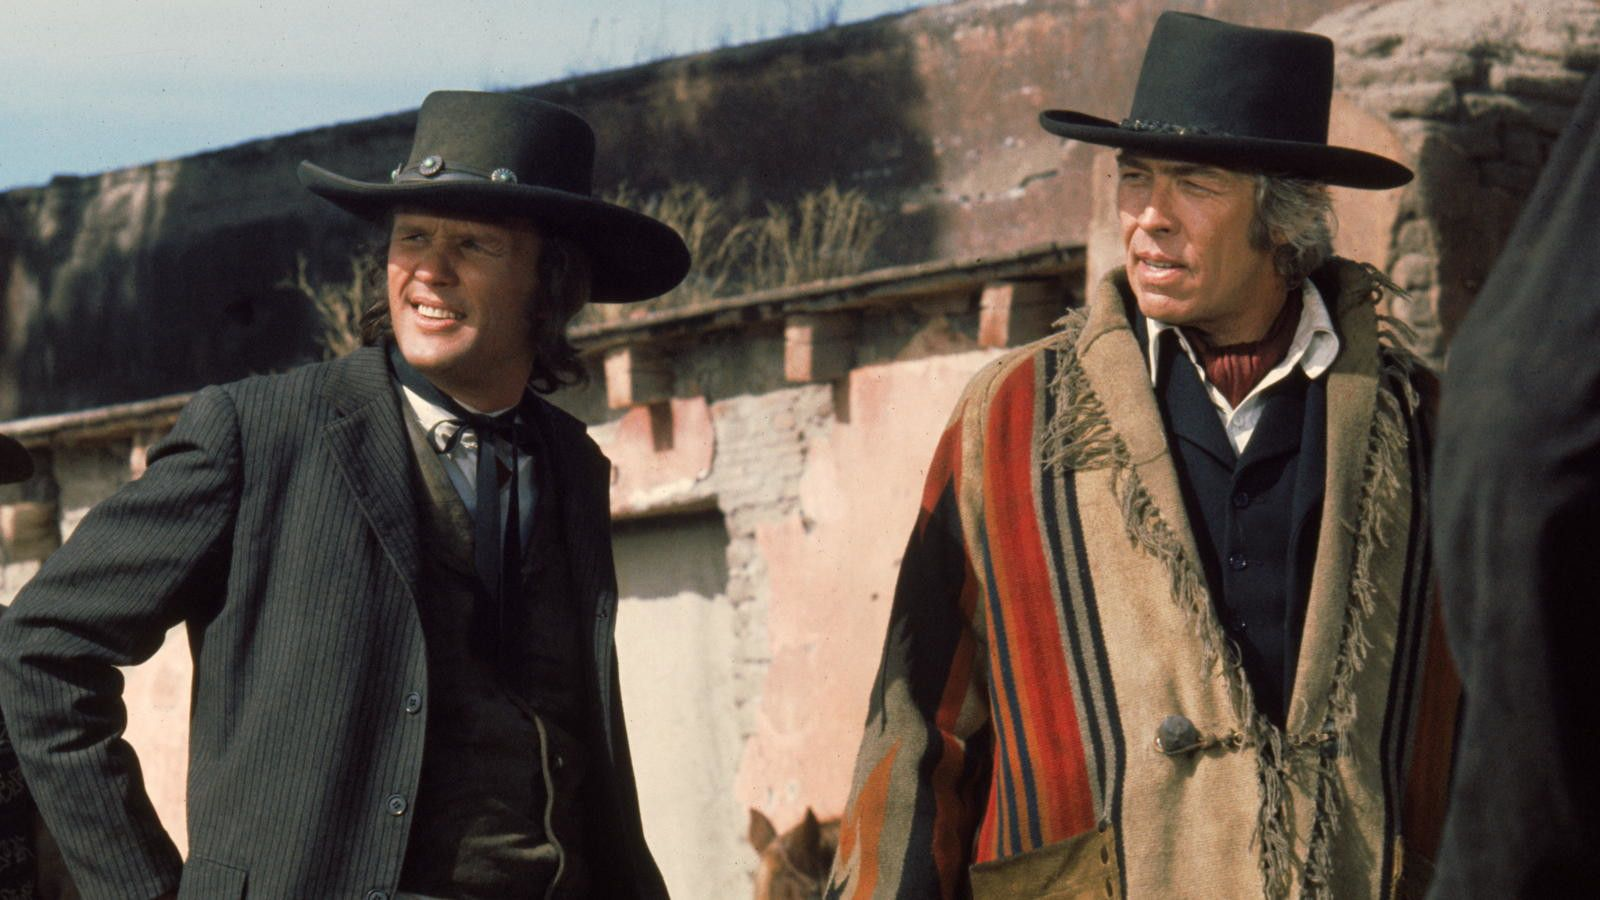 Pat Garrett et Billy le Kid (Pat Garrett and Billy the Kid)